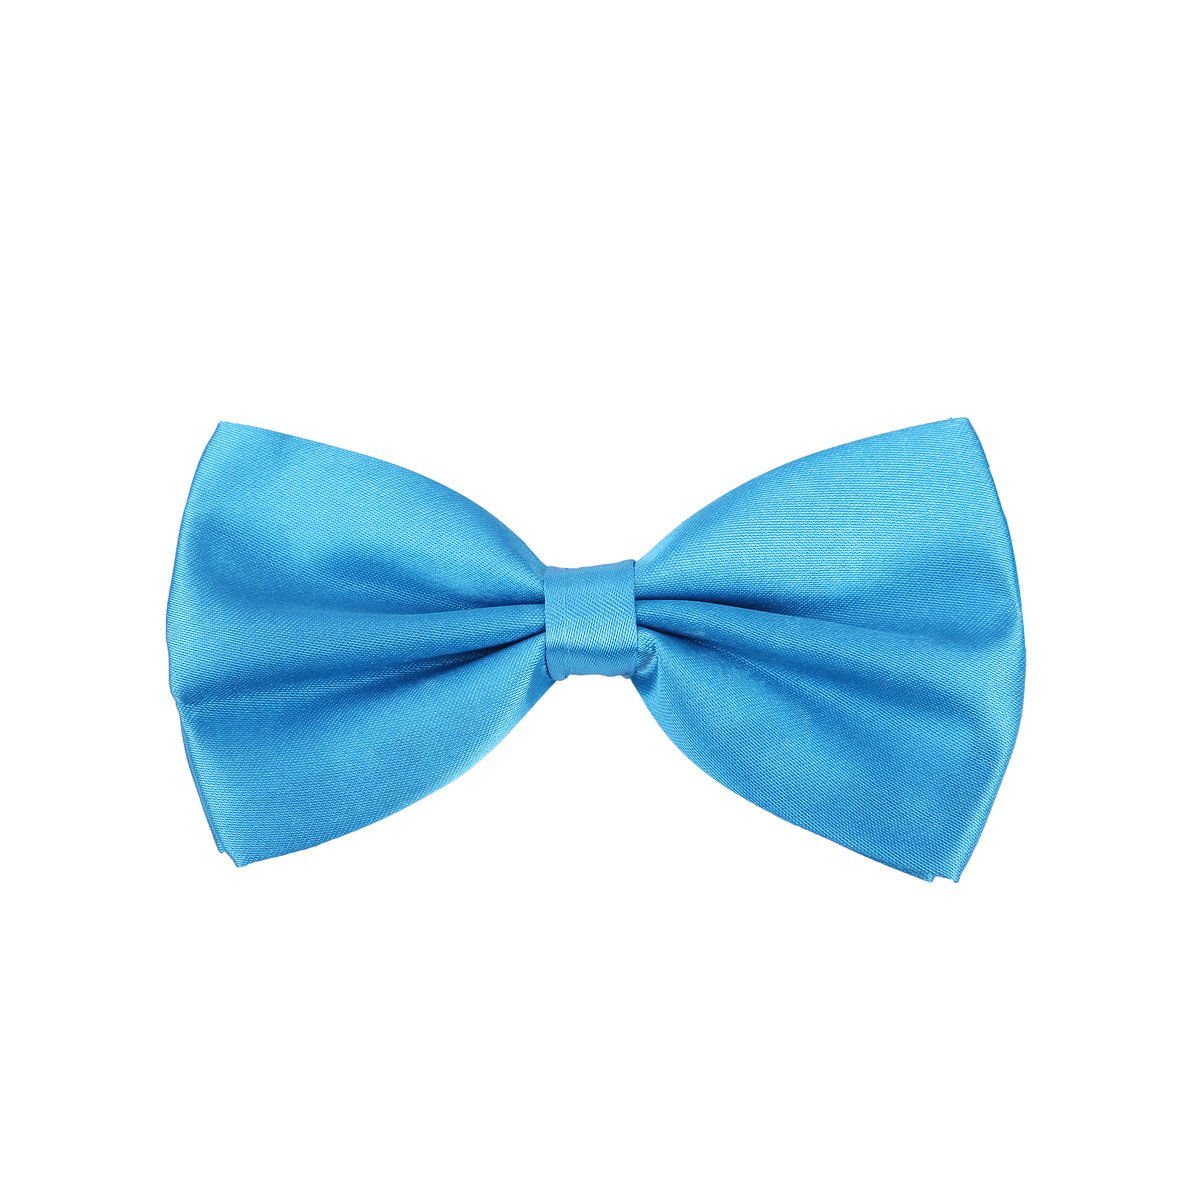 Kids Small Solid Color Adjustable Tuxedo Neck Bowtie Bow Tie - Diff Colors Brown BT158-Brown